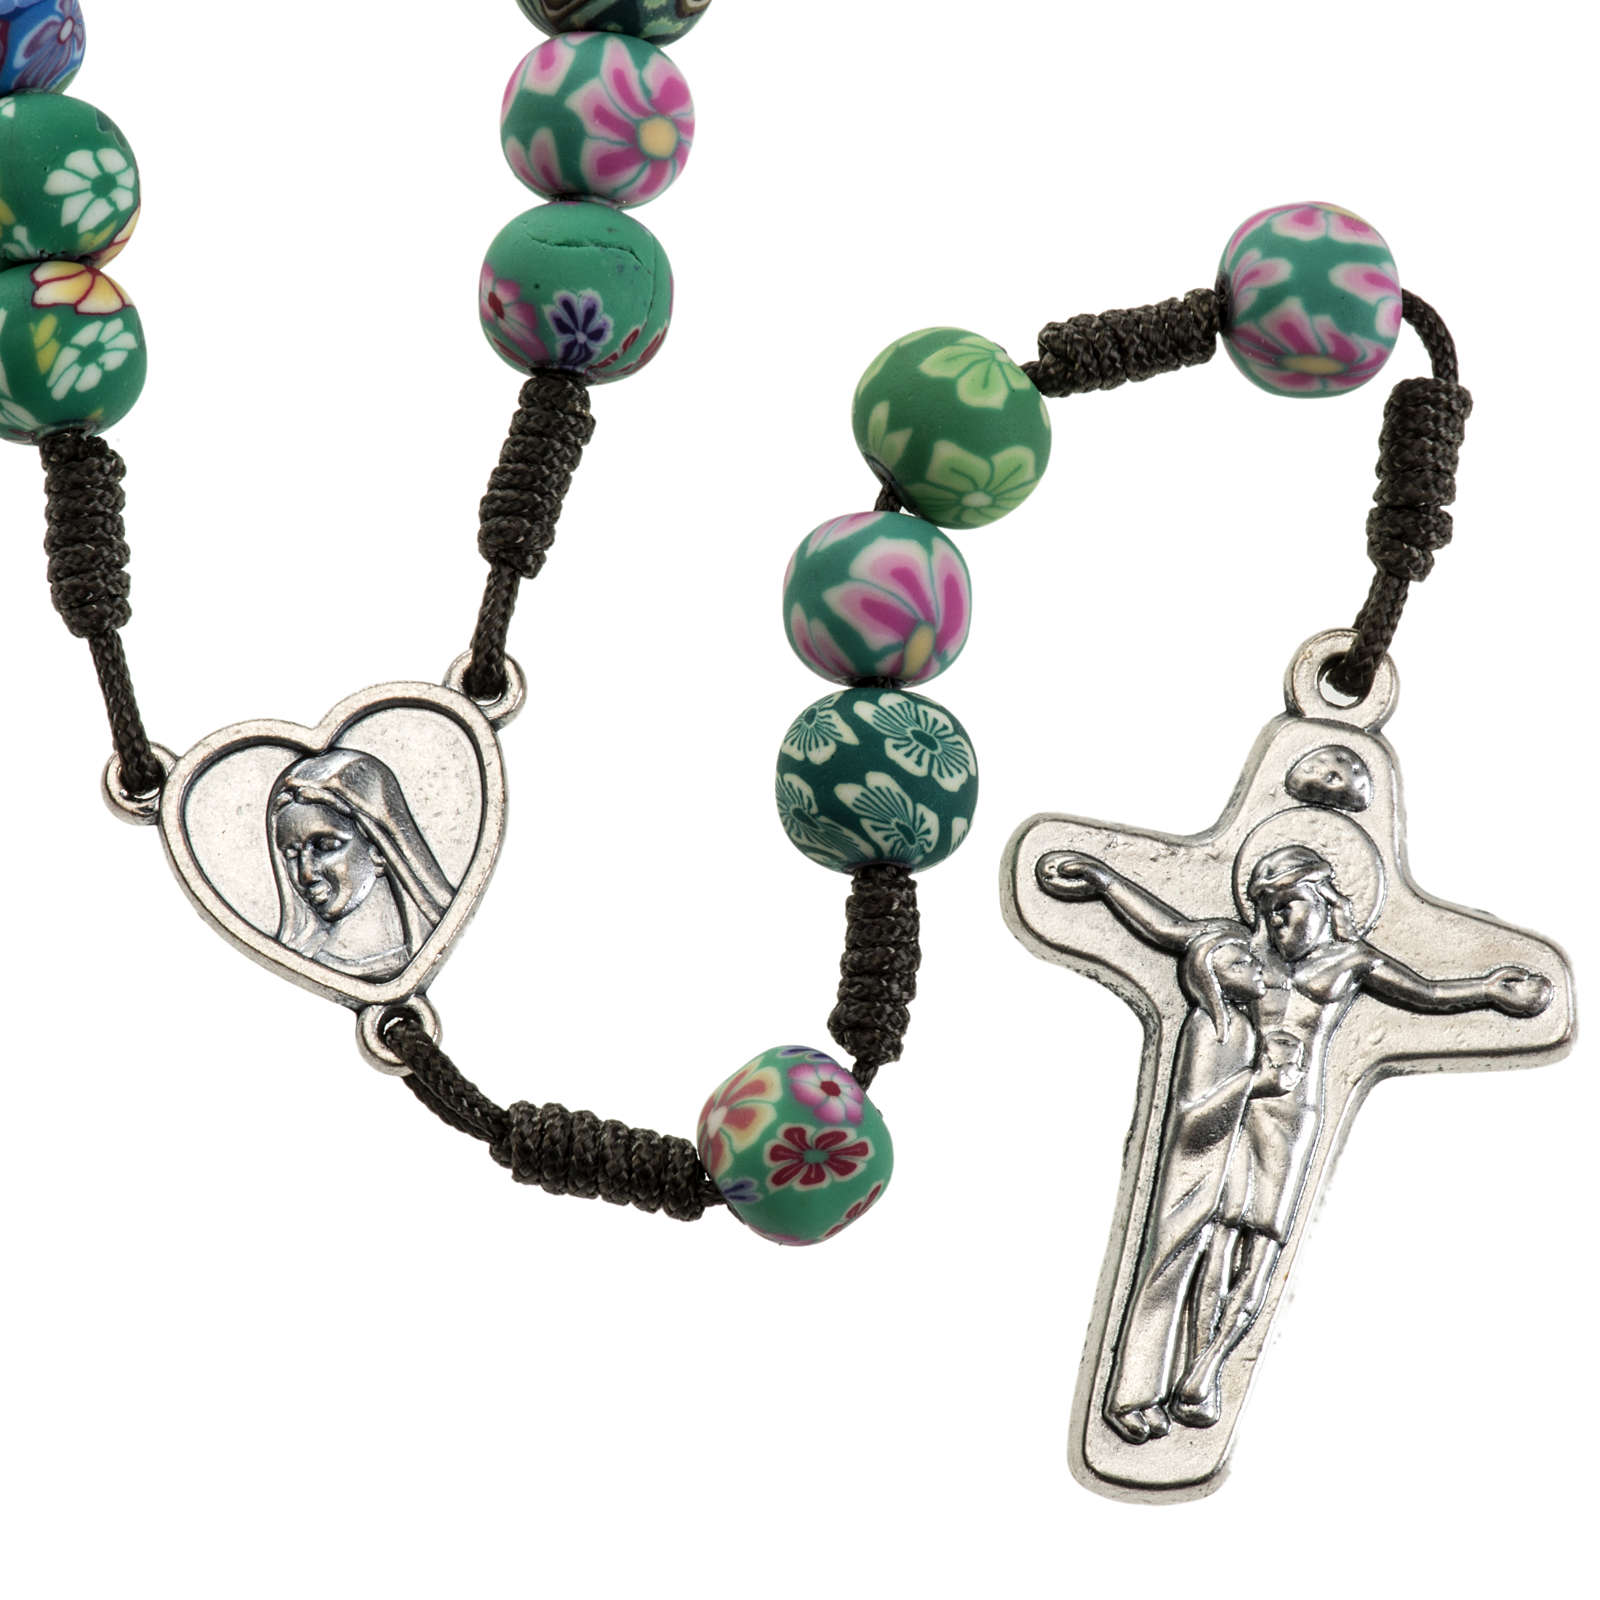 Medjugorje rosary beads in fimo with decoration 4